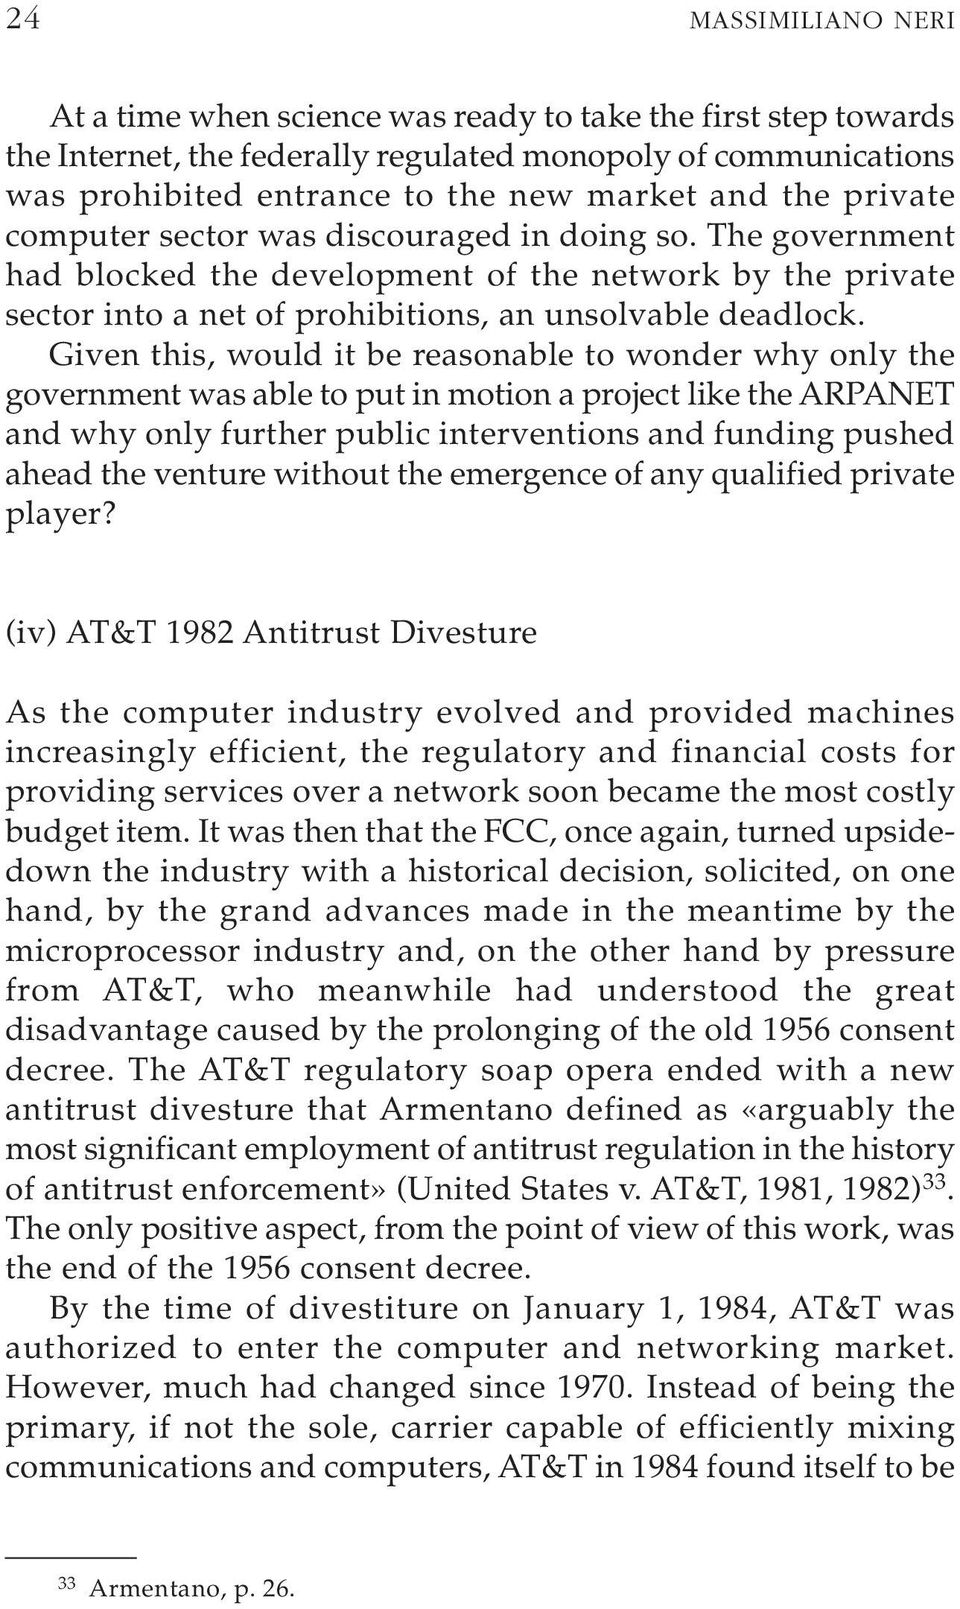 Given this, would it be reasonable to wonder why only the government was able to put in motion a project like the ARPANET and why only further public interventions and funding pushed ahead the